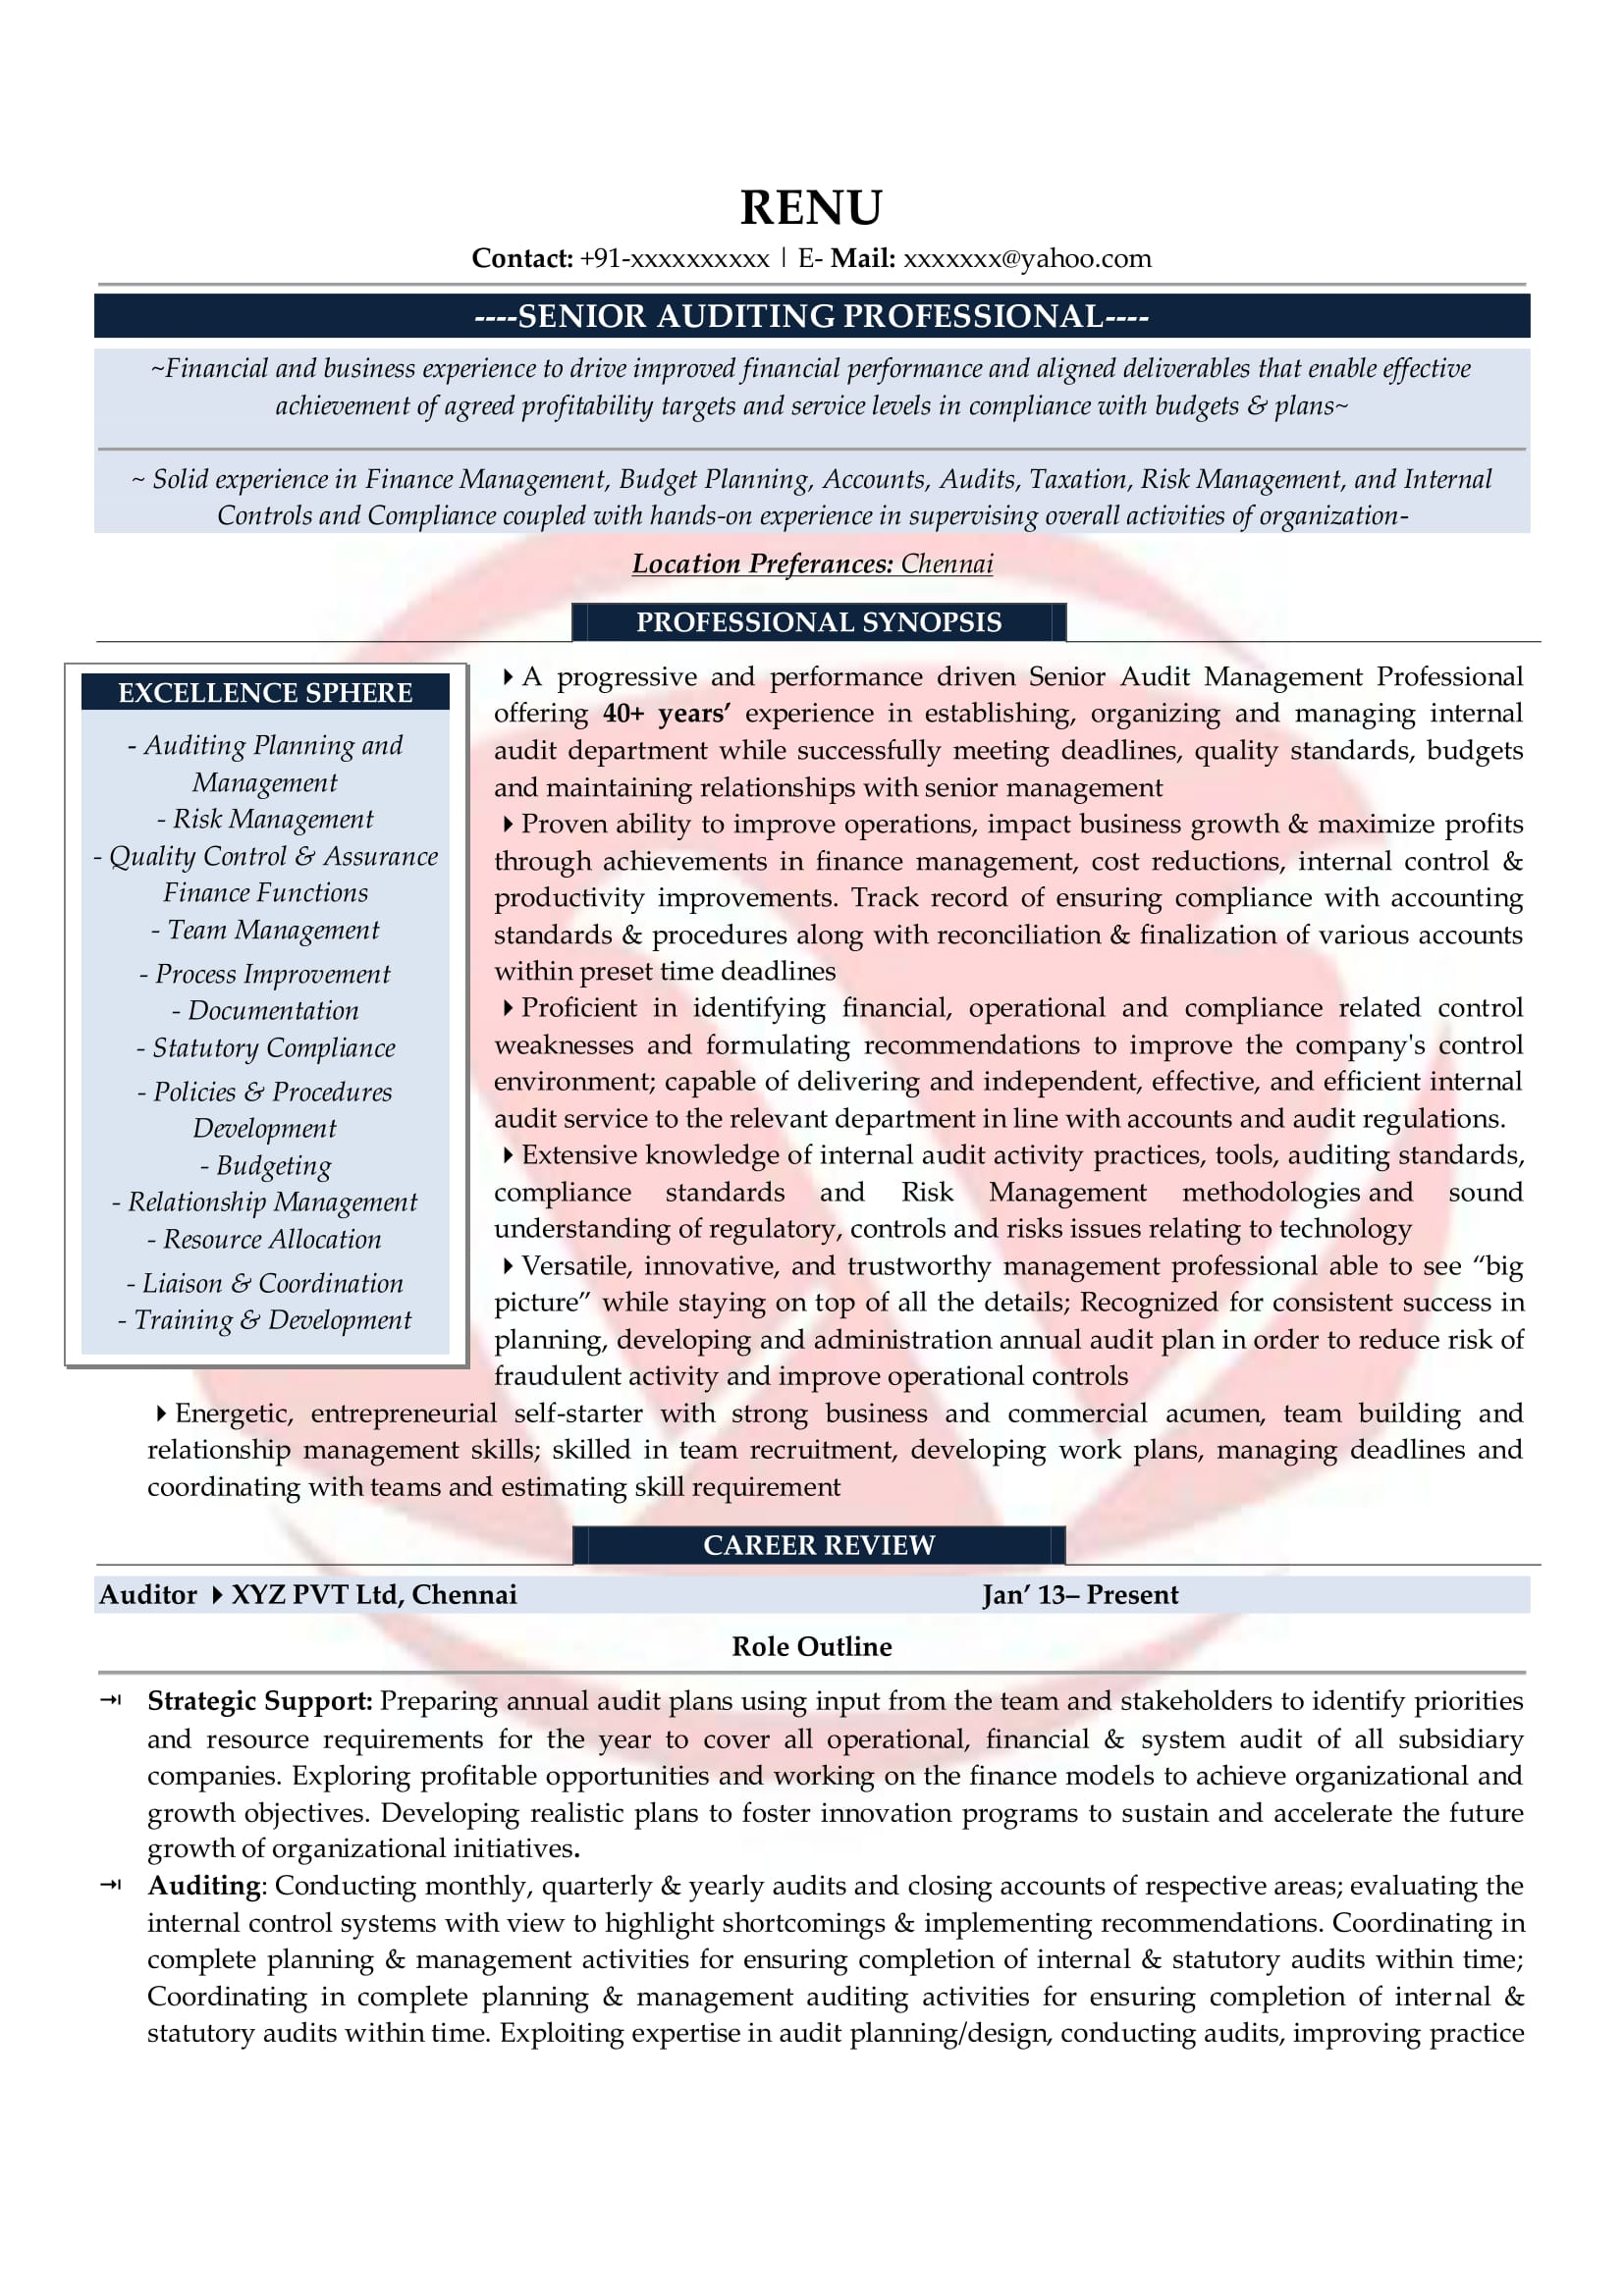 Auditor Sample Resumes Download Resume Format Templates